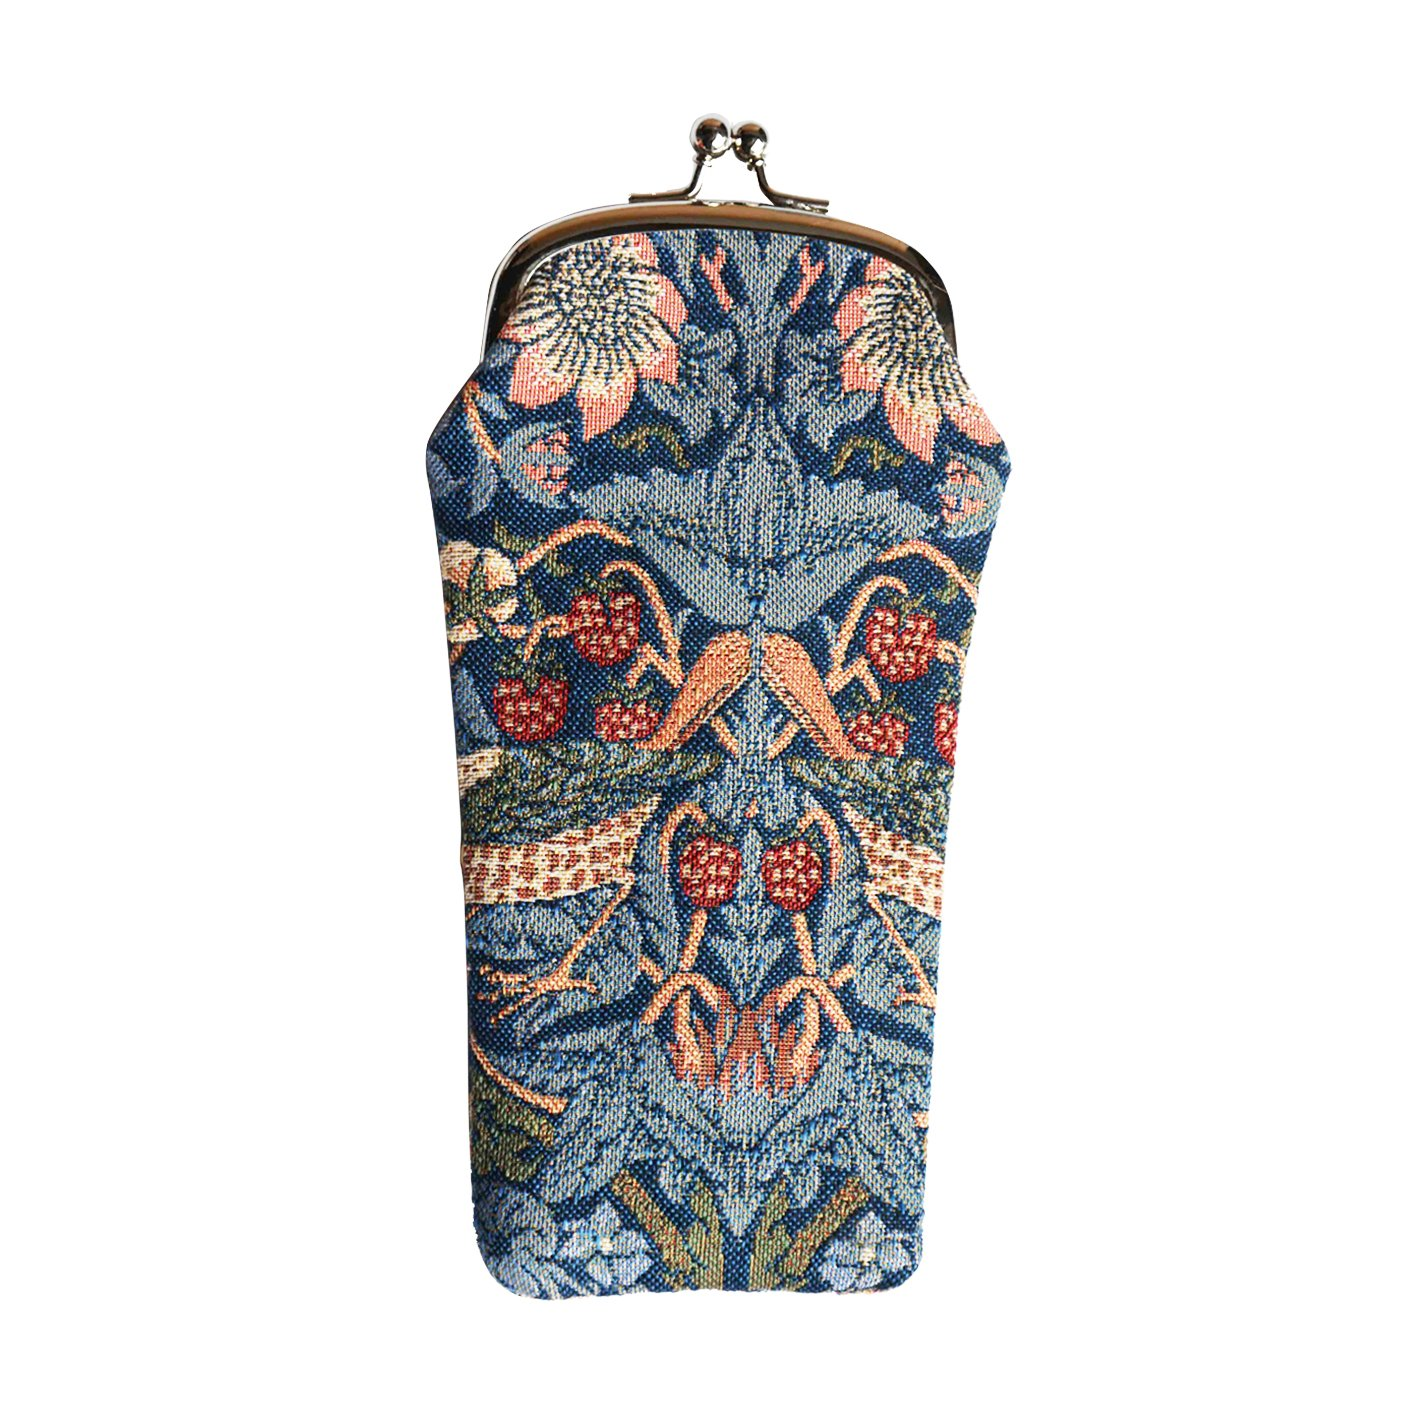 Signare Tapestry Eyeglasses Pouch Sunglasses Bag Spectacle Pouch by Designer William Morris Golden Lily (GPCH-GLILY)